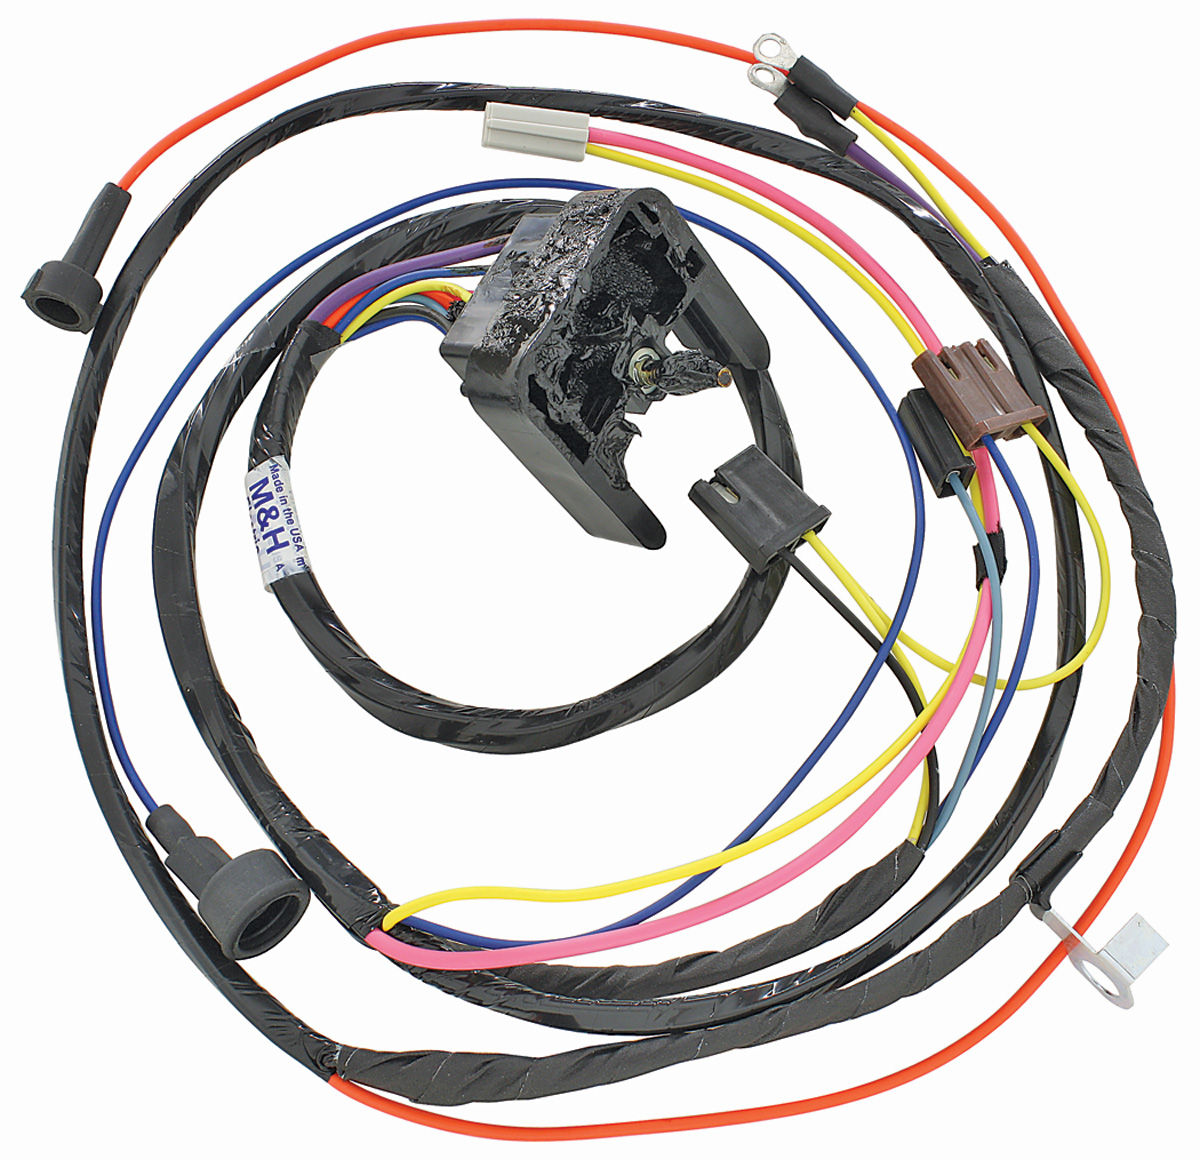 38947 lrg?v=102520130818 m&h 1968 69 chevelle engine harness 396 hei w warning lights Toyota Engine Wiring Harness at gsmx.co